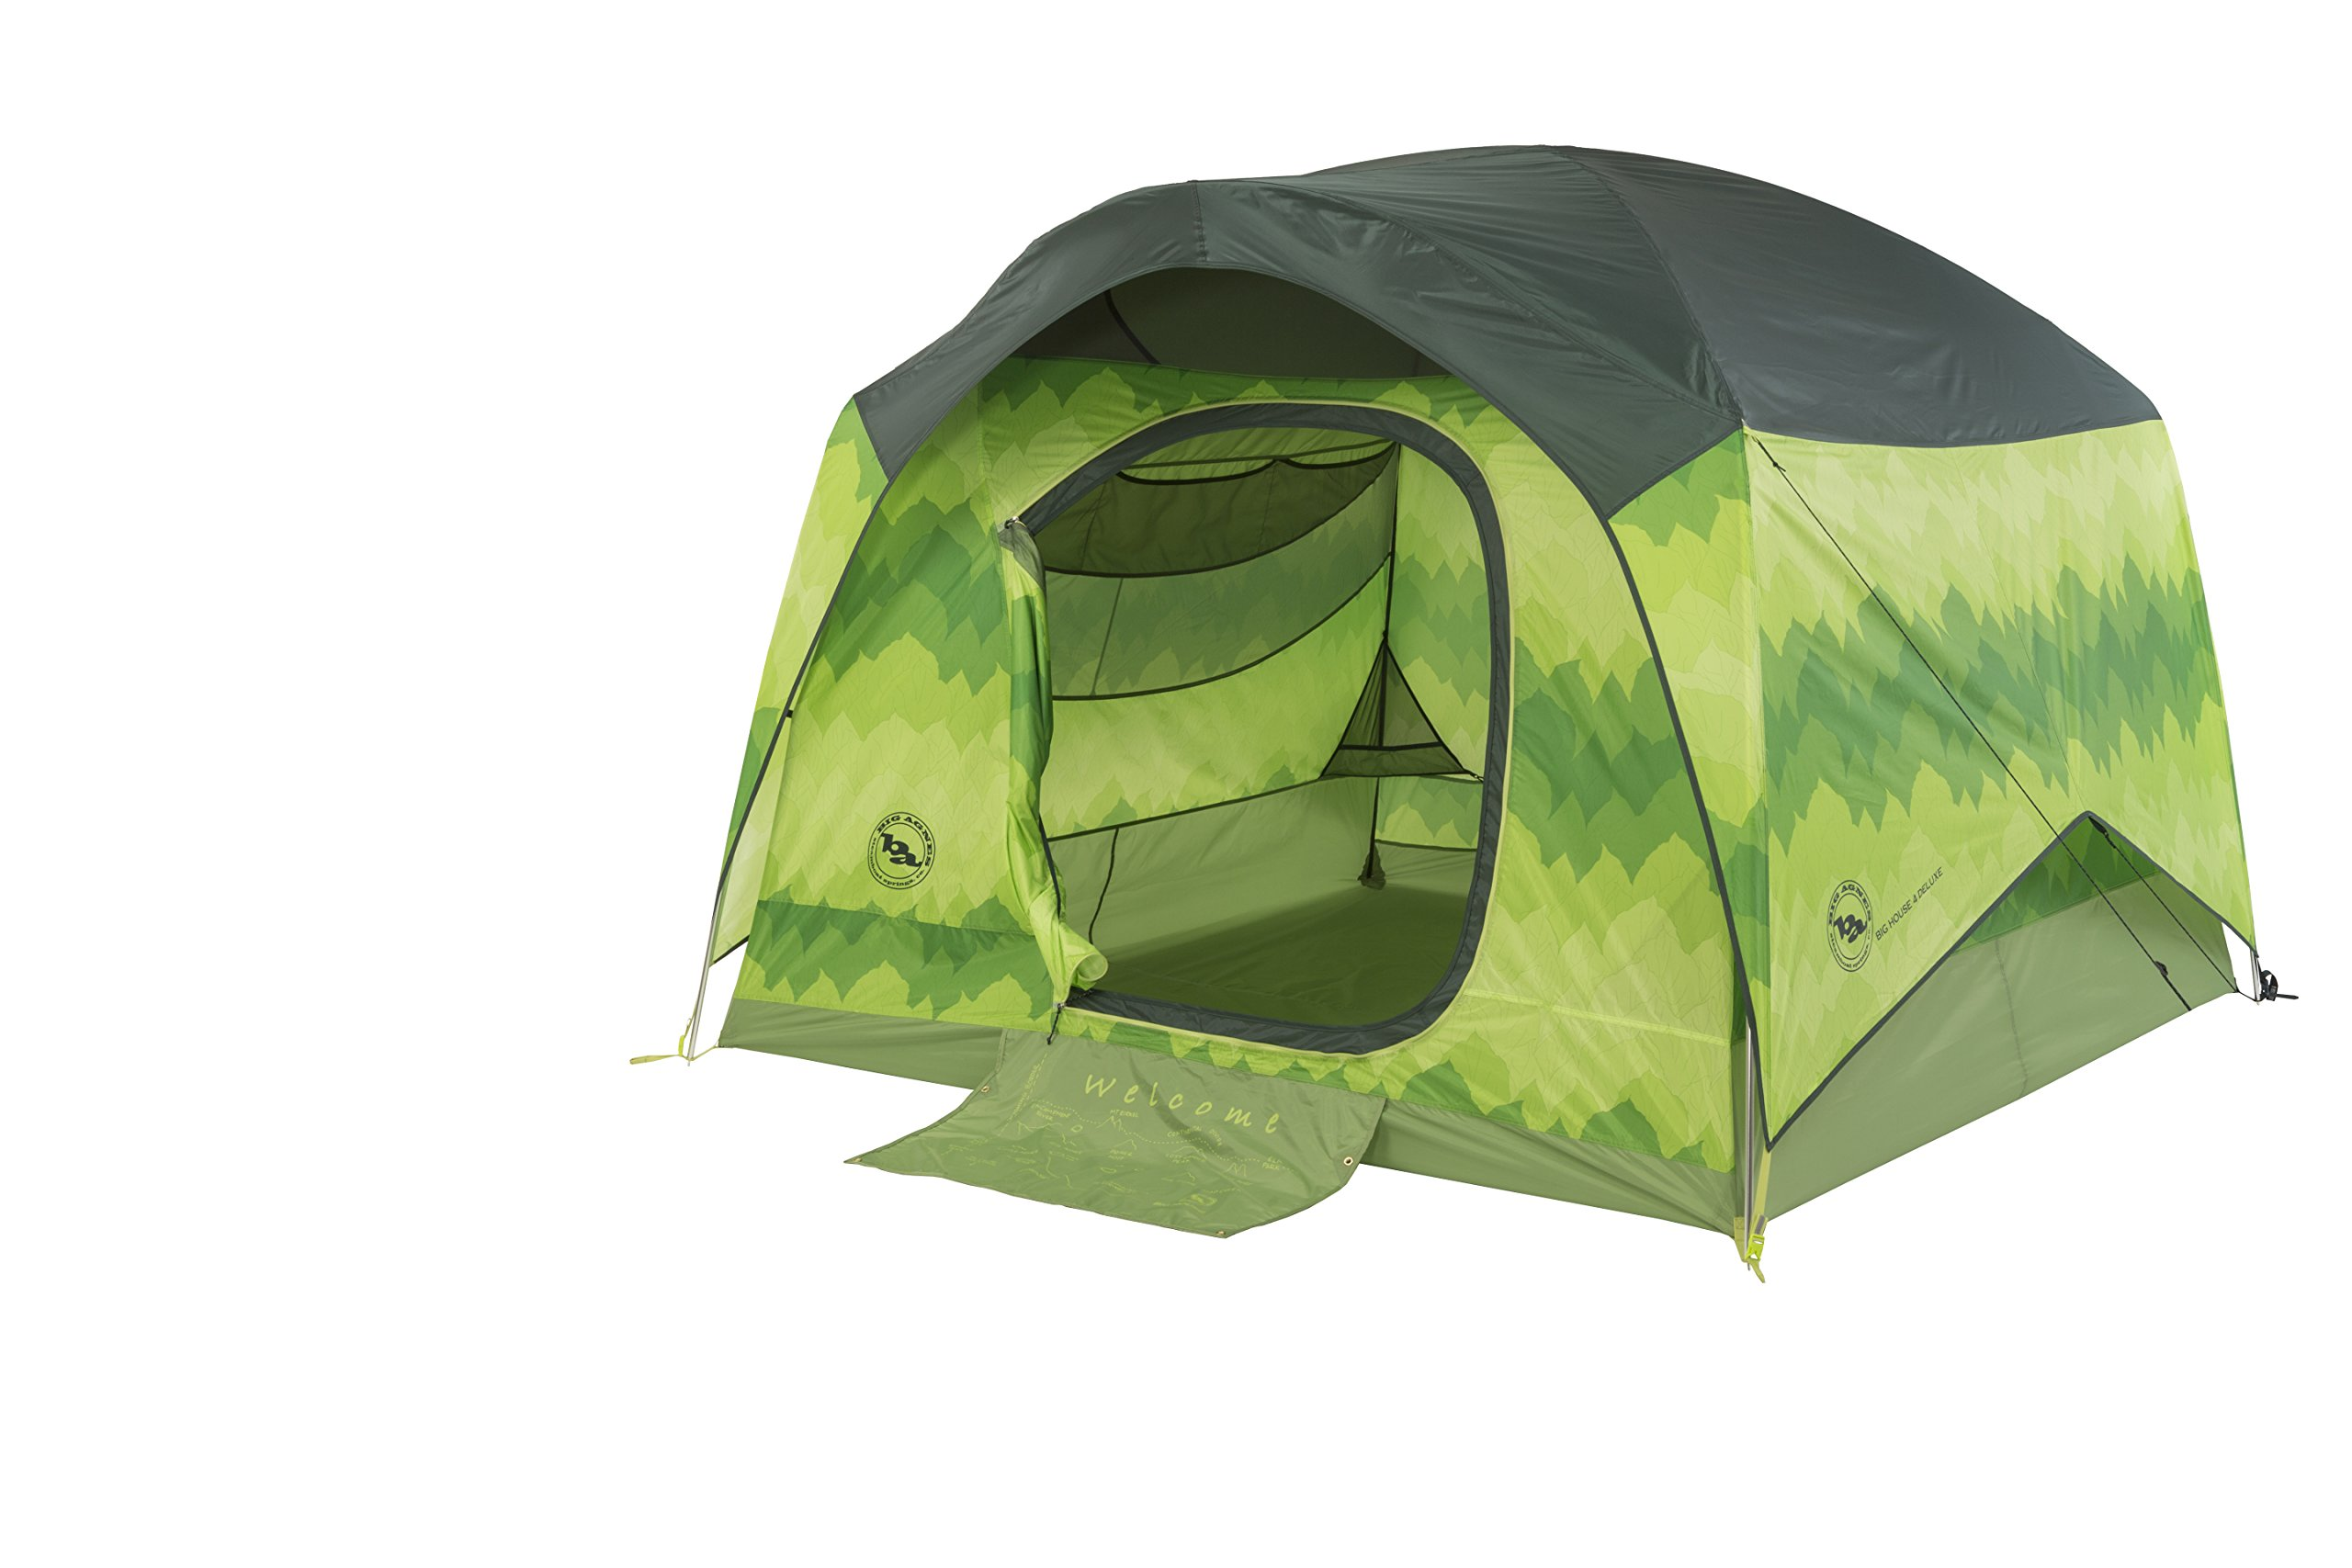 Big Agnes Big House Deluxe Camping Tent, Green Leaf, 4 Person